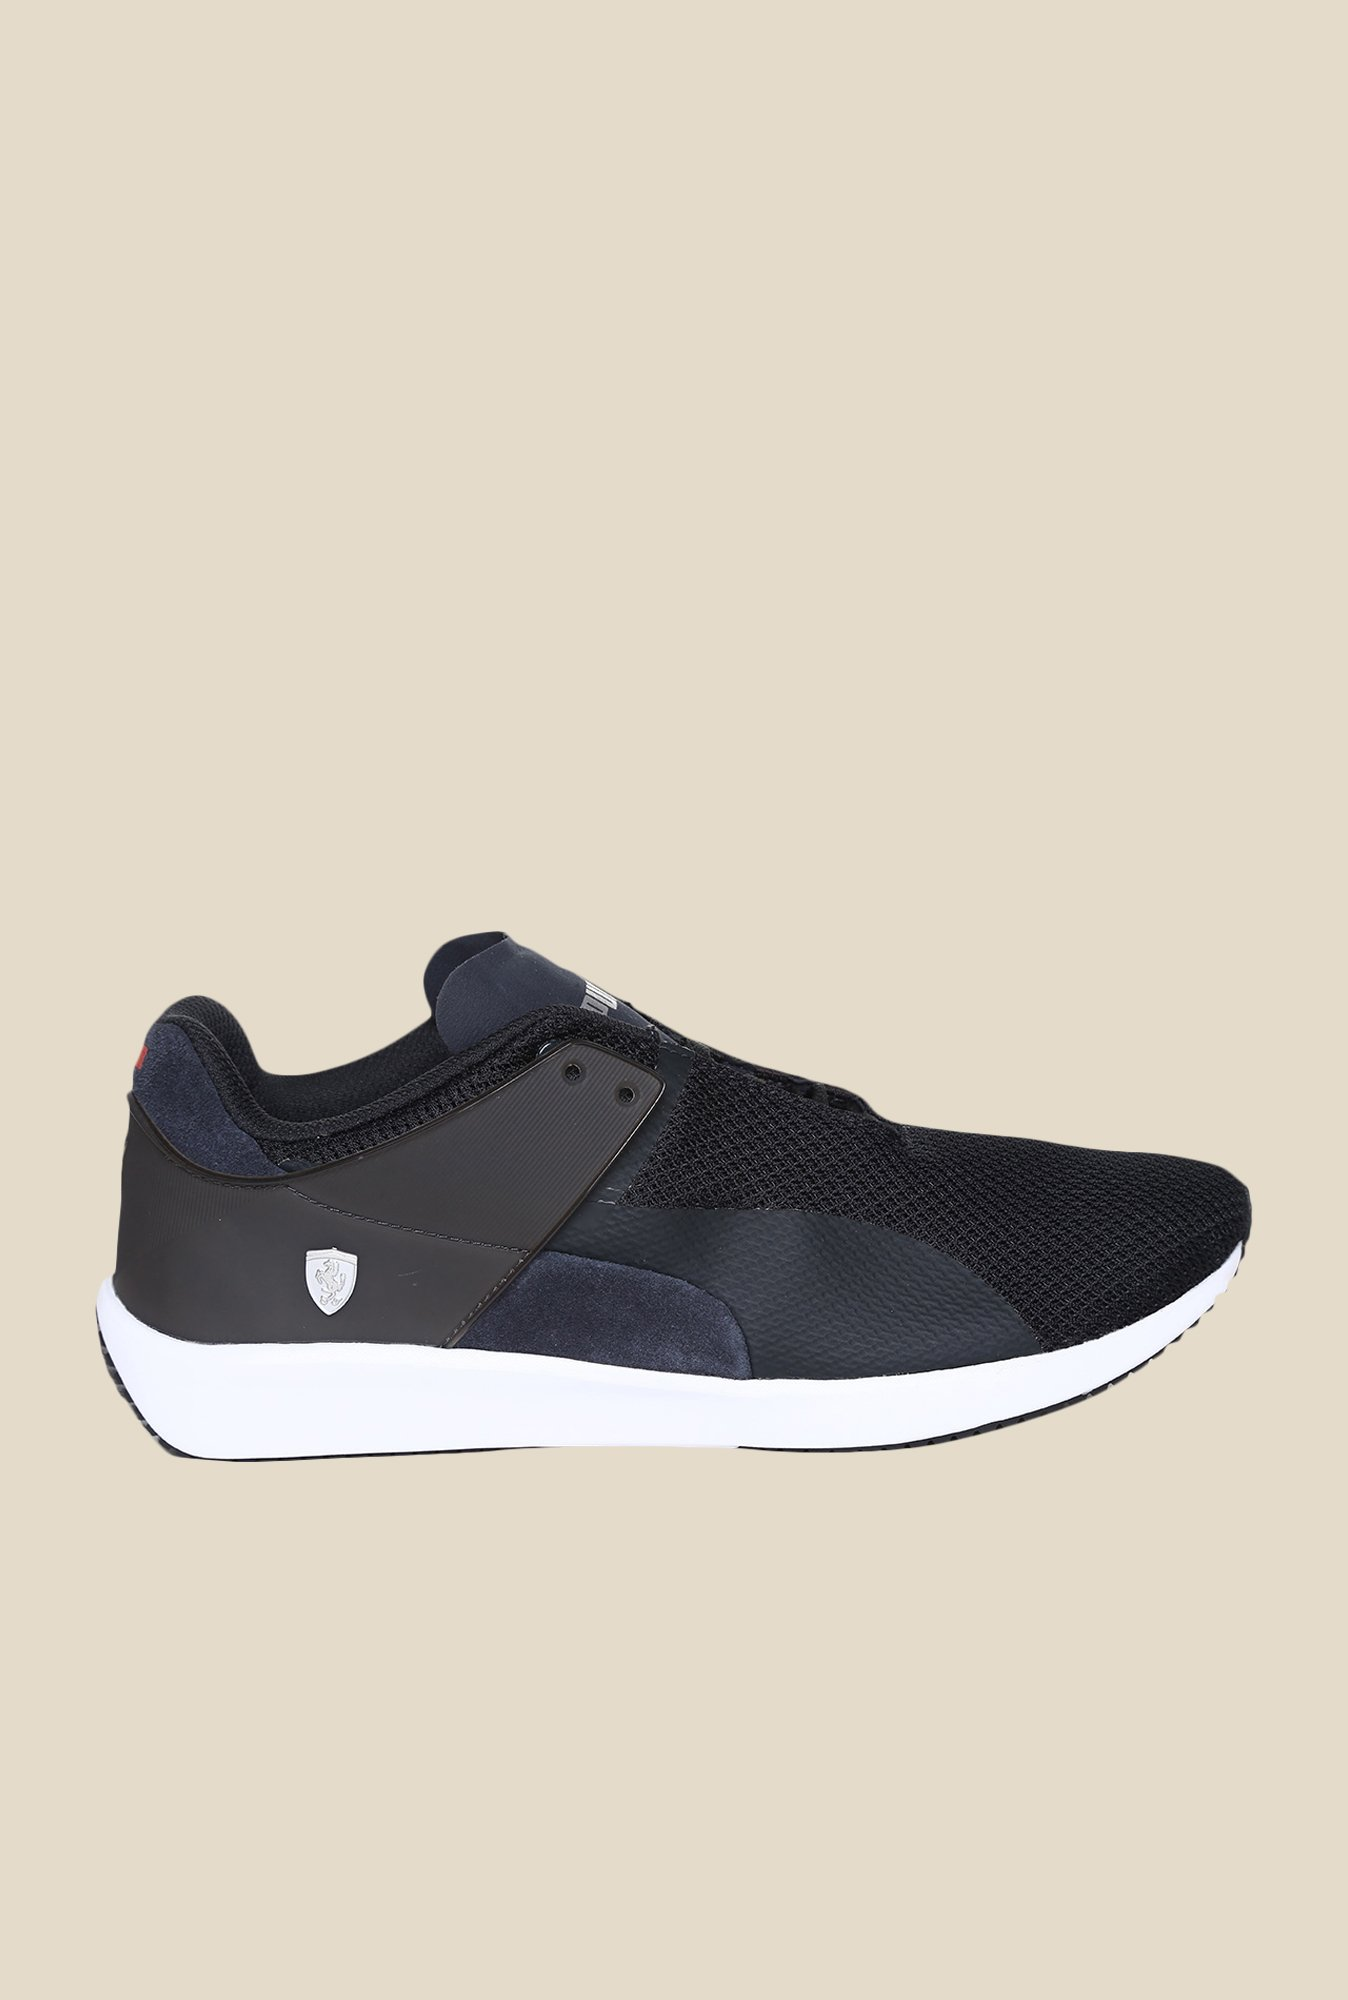 Puma F116 SF Moonless Night & white Sneakers